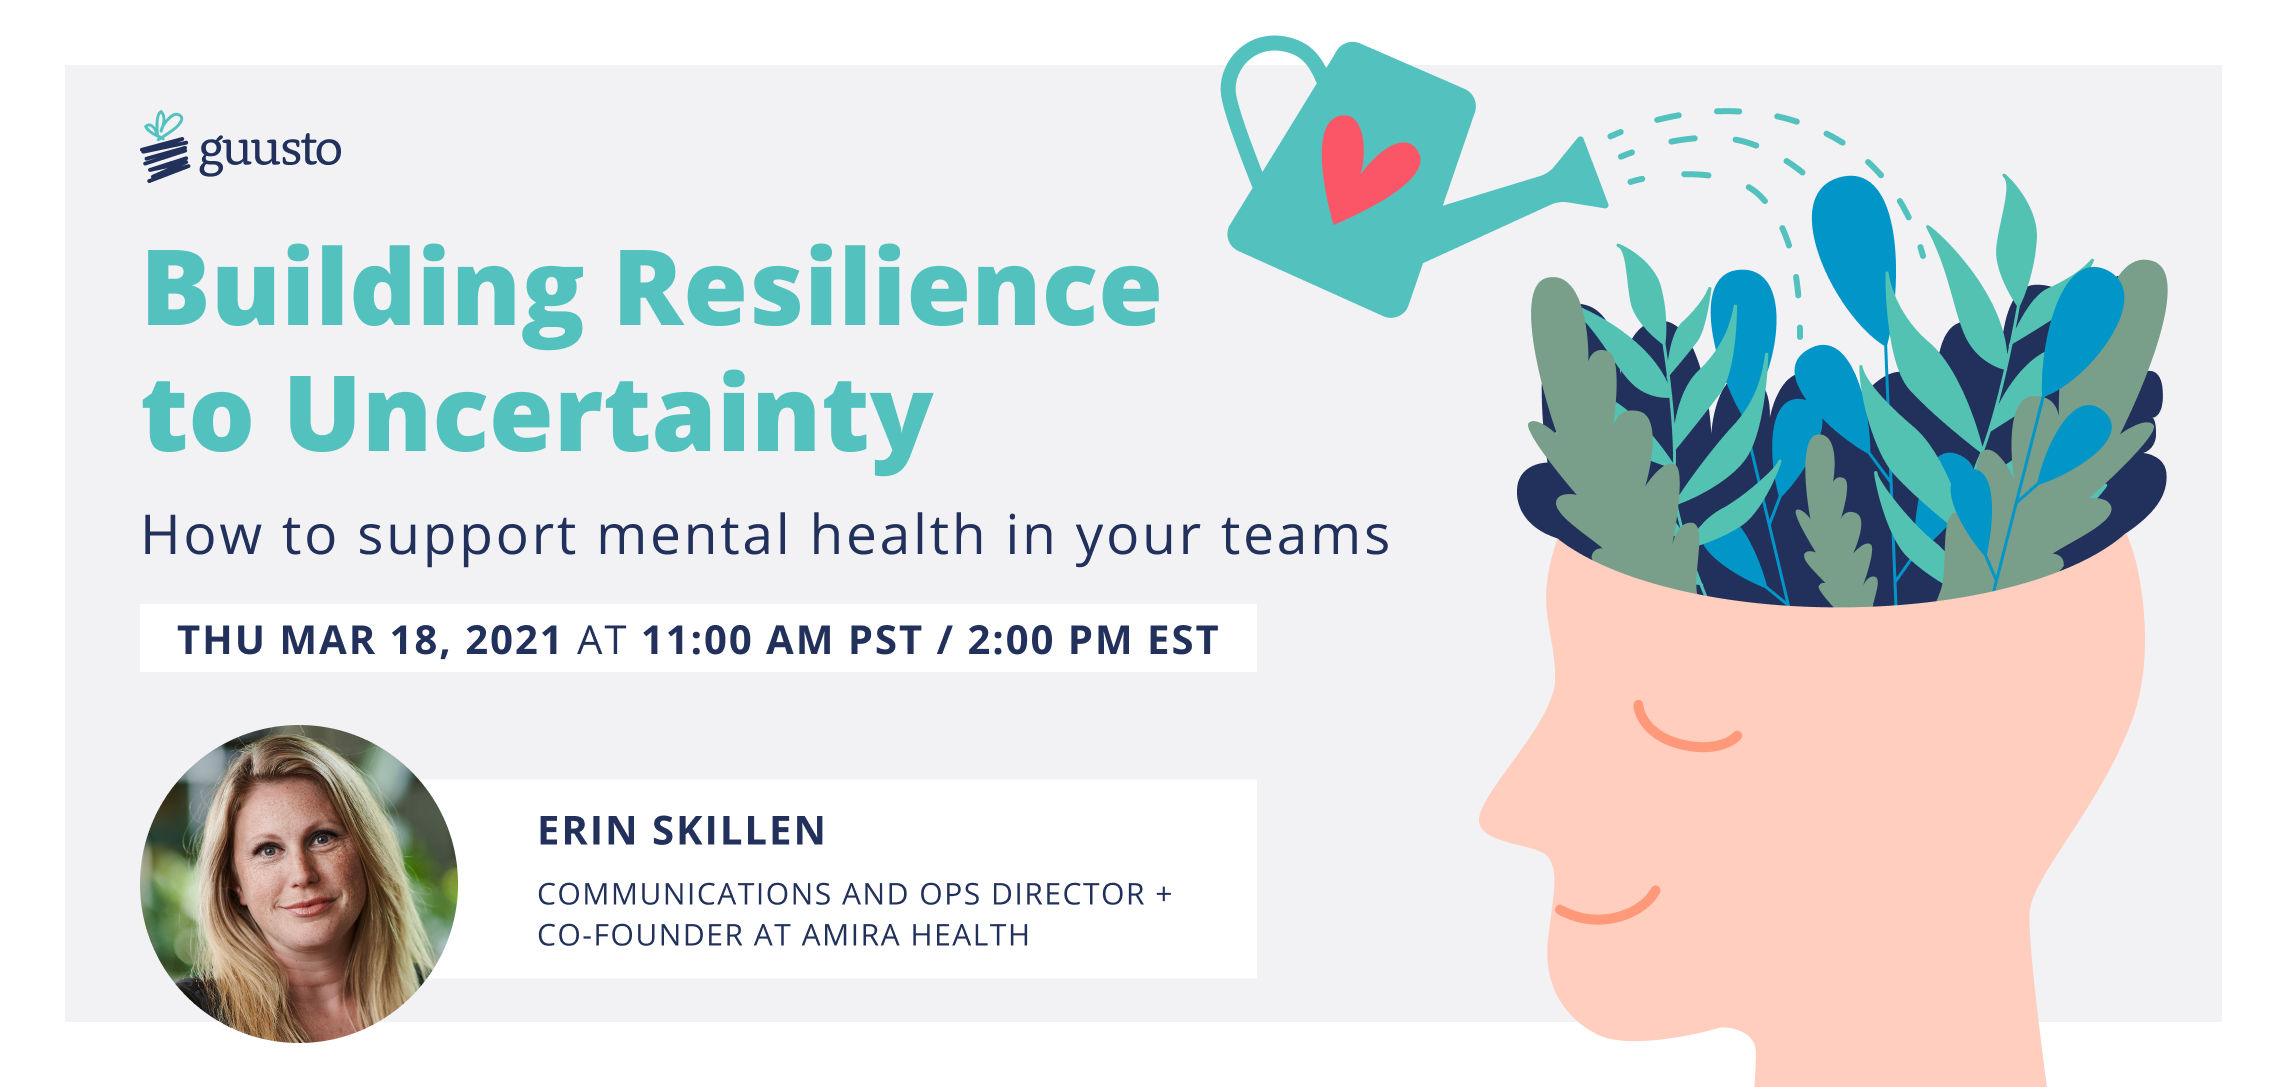 Building Resilience to Uncertainty